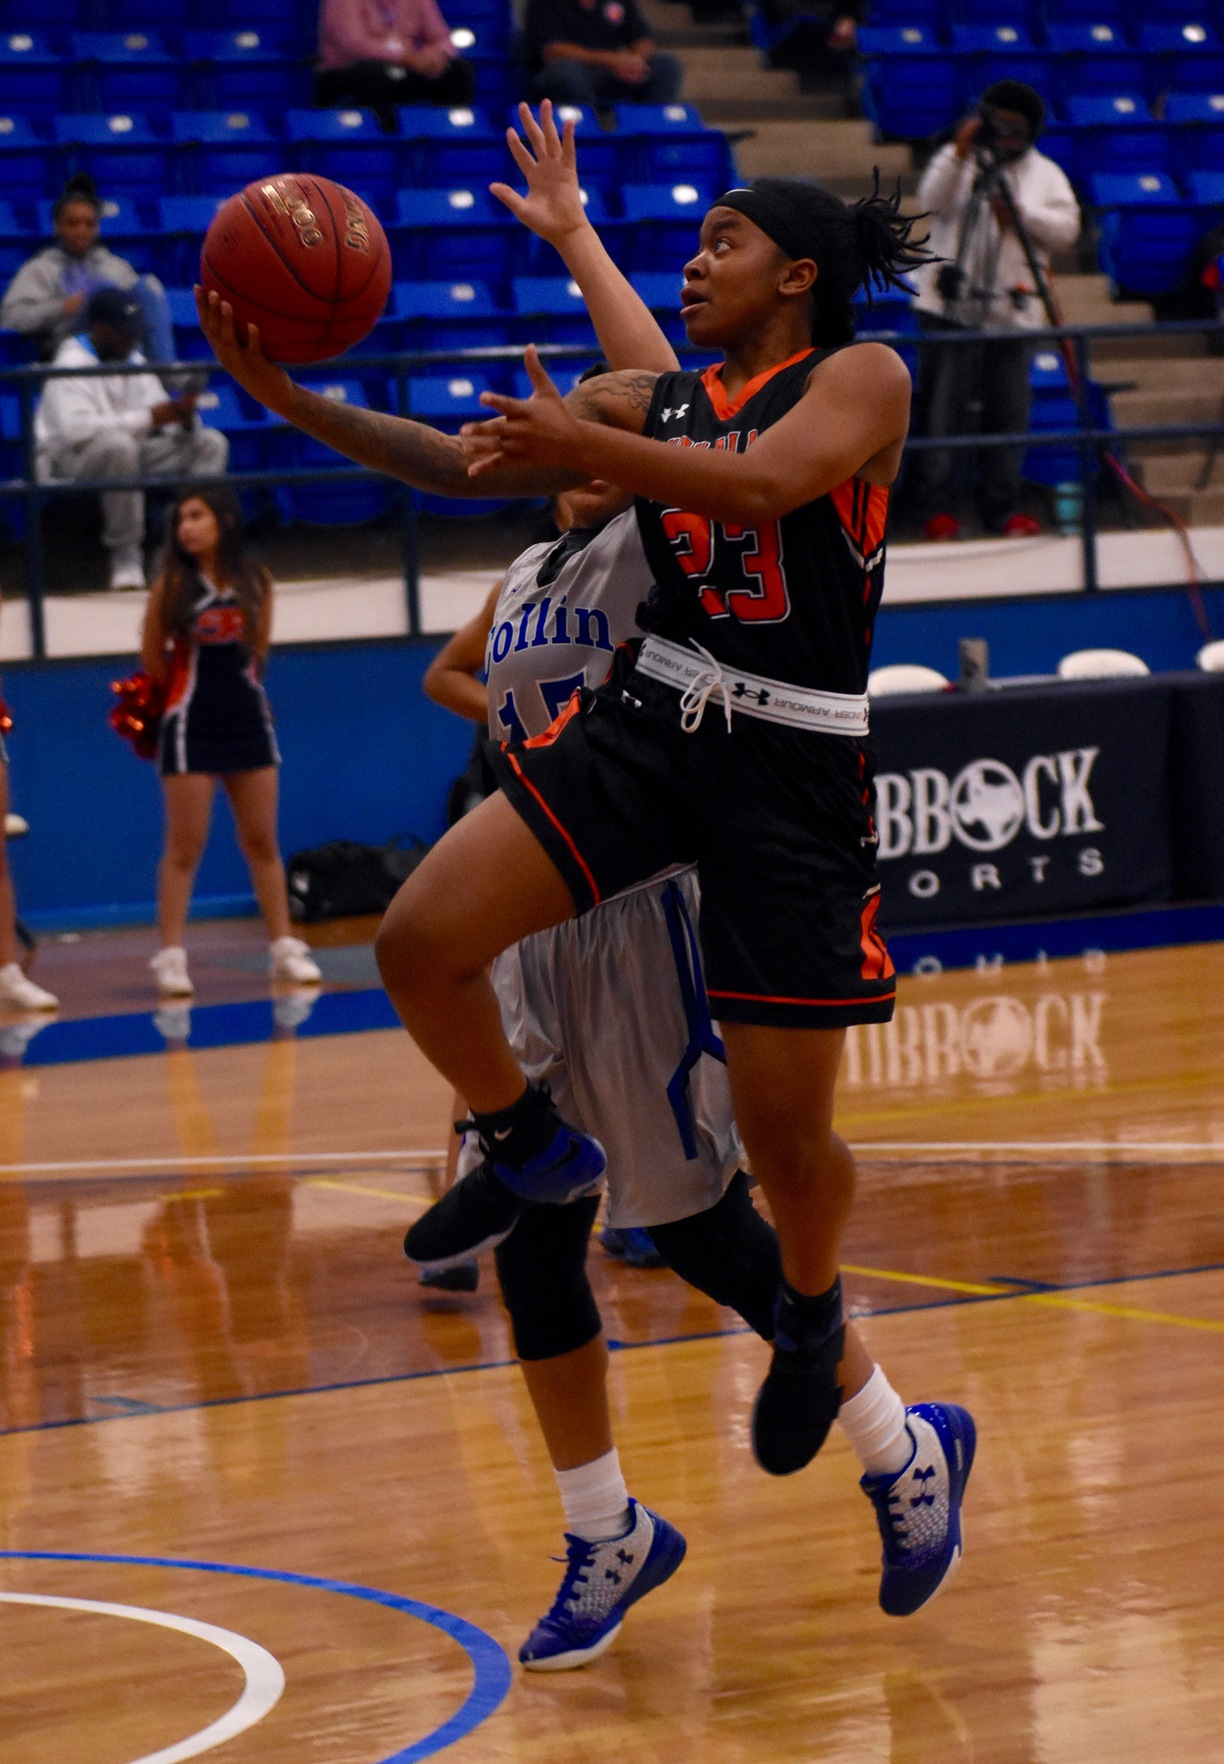 Despite valiant fourth quarter surge, Lady Texans fall to Collin County 77-70 in semifinal round of Region V Tournament